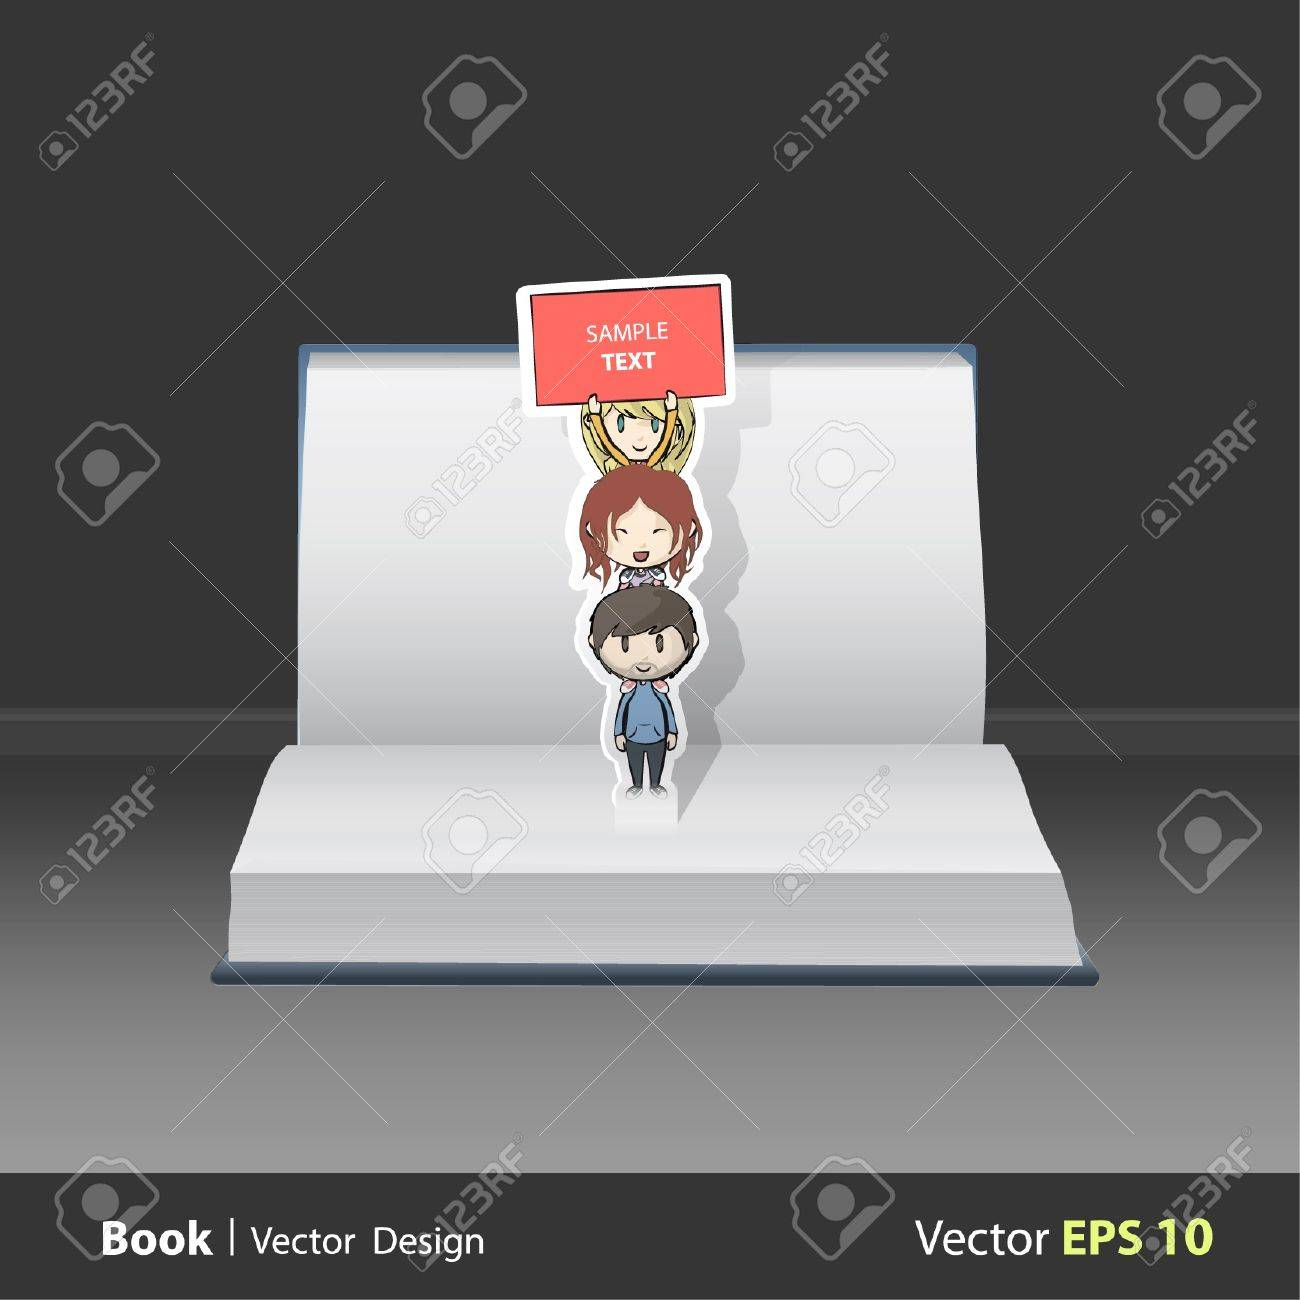 Open book with children over children holding a poster. Vector design. Pop-Up Illustration. Stock Vector - 17613770